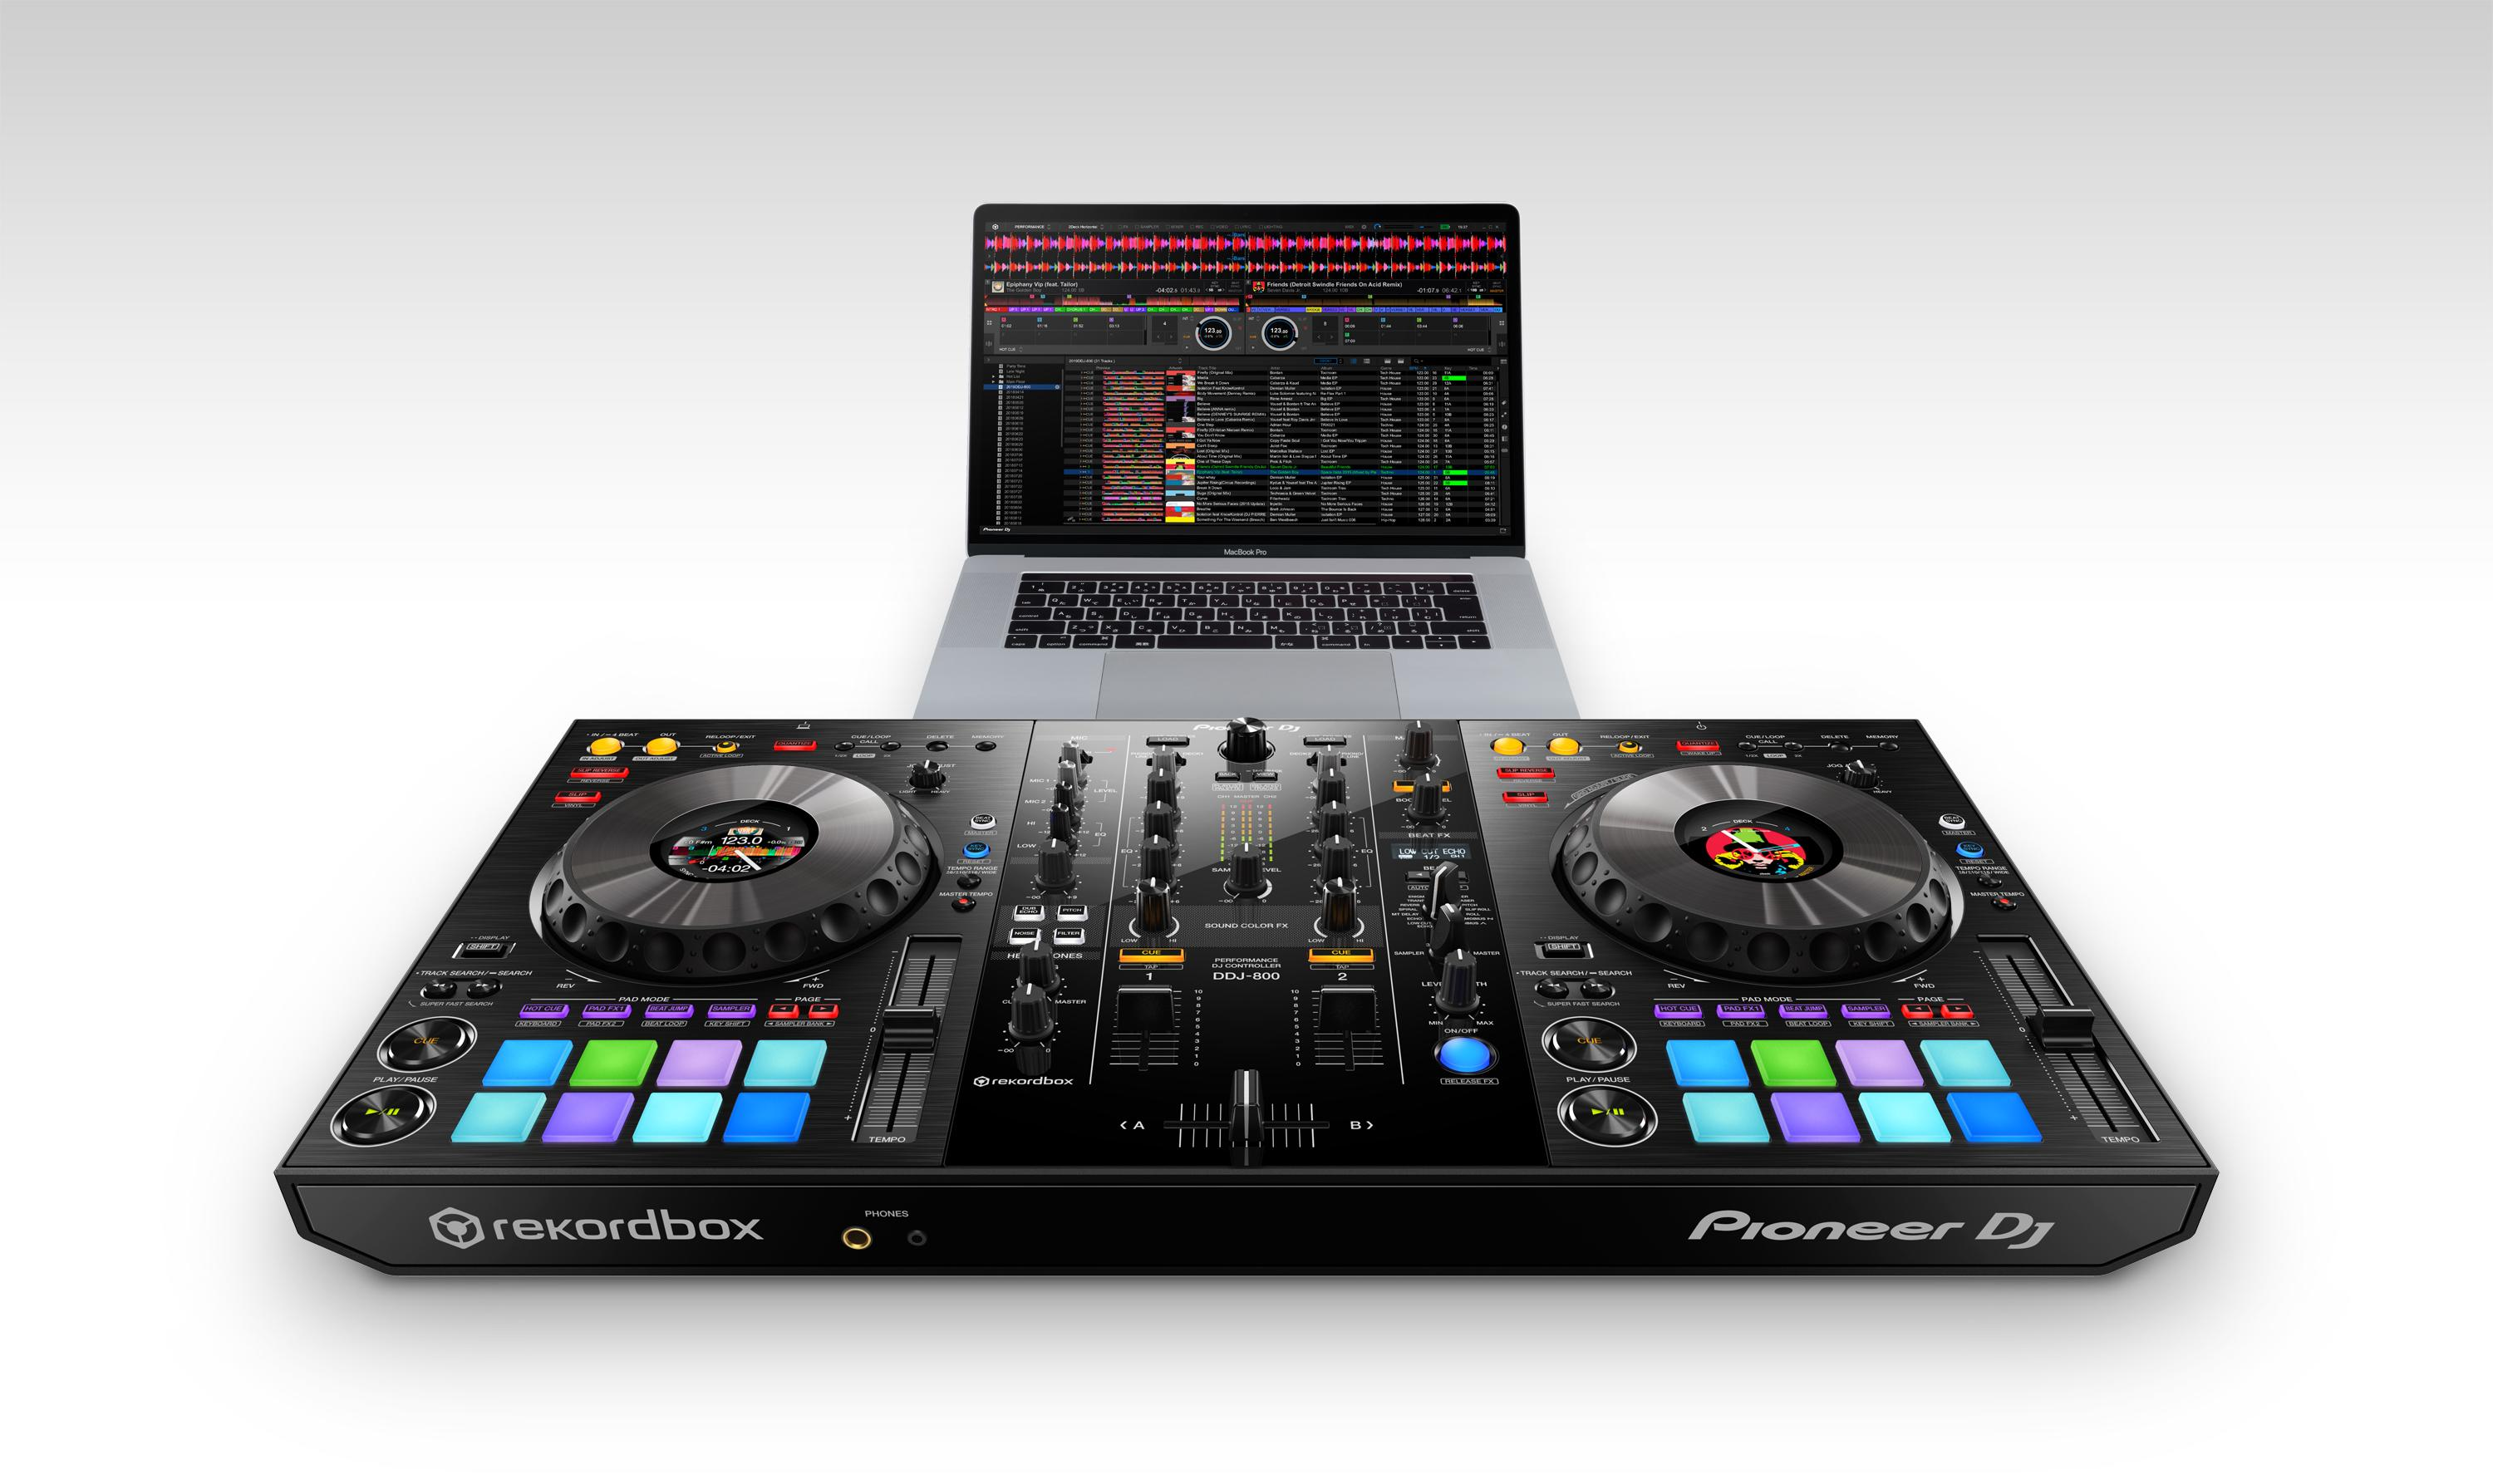 Pioneer DJ DDJ-800 with laptop